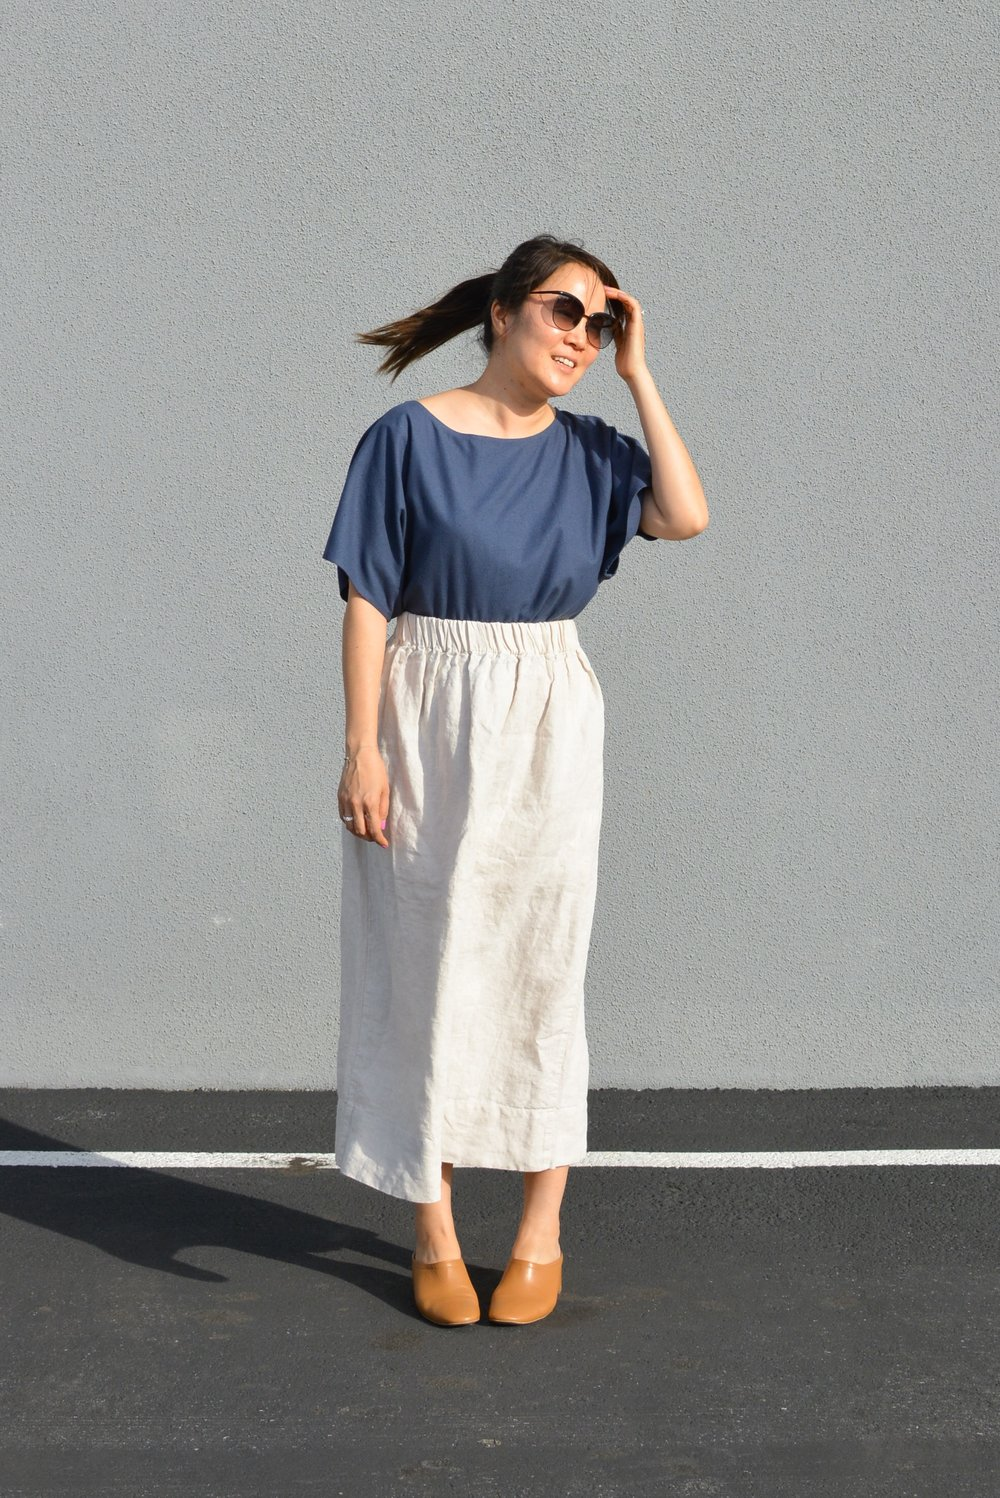 Elizabeth Suzann Review Linen Bel Skirt (6 of 6)-min.jpg